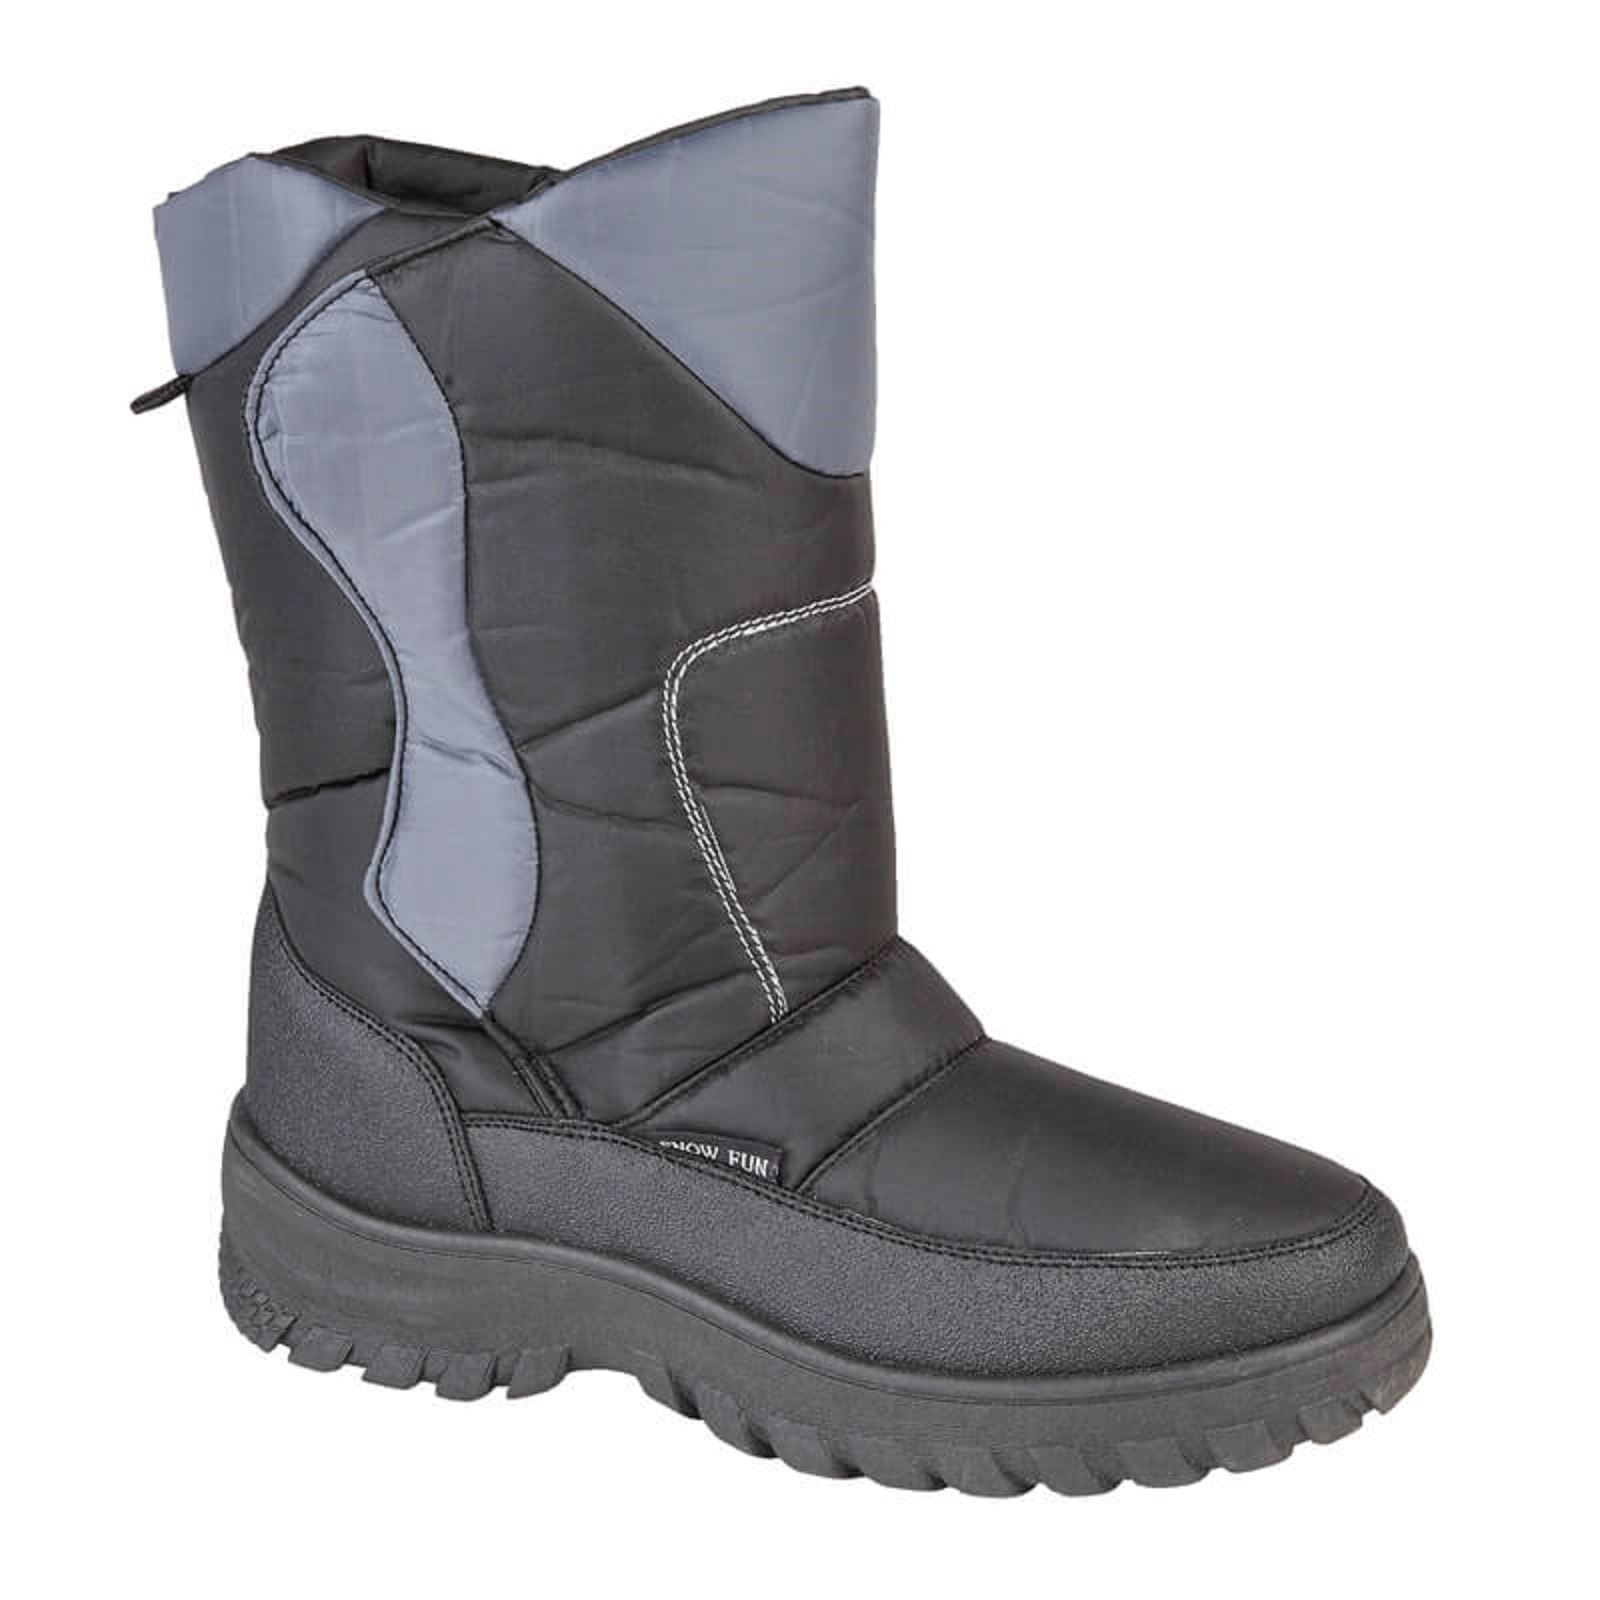 great deals on fashion picked up good Details about Mens Snow Boots Winter Thermal Warm Fur Lined Flat Shoes